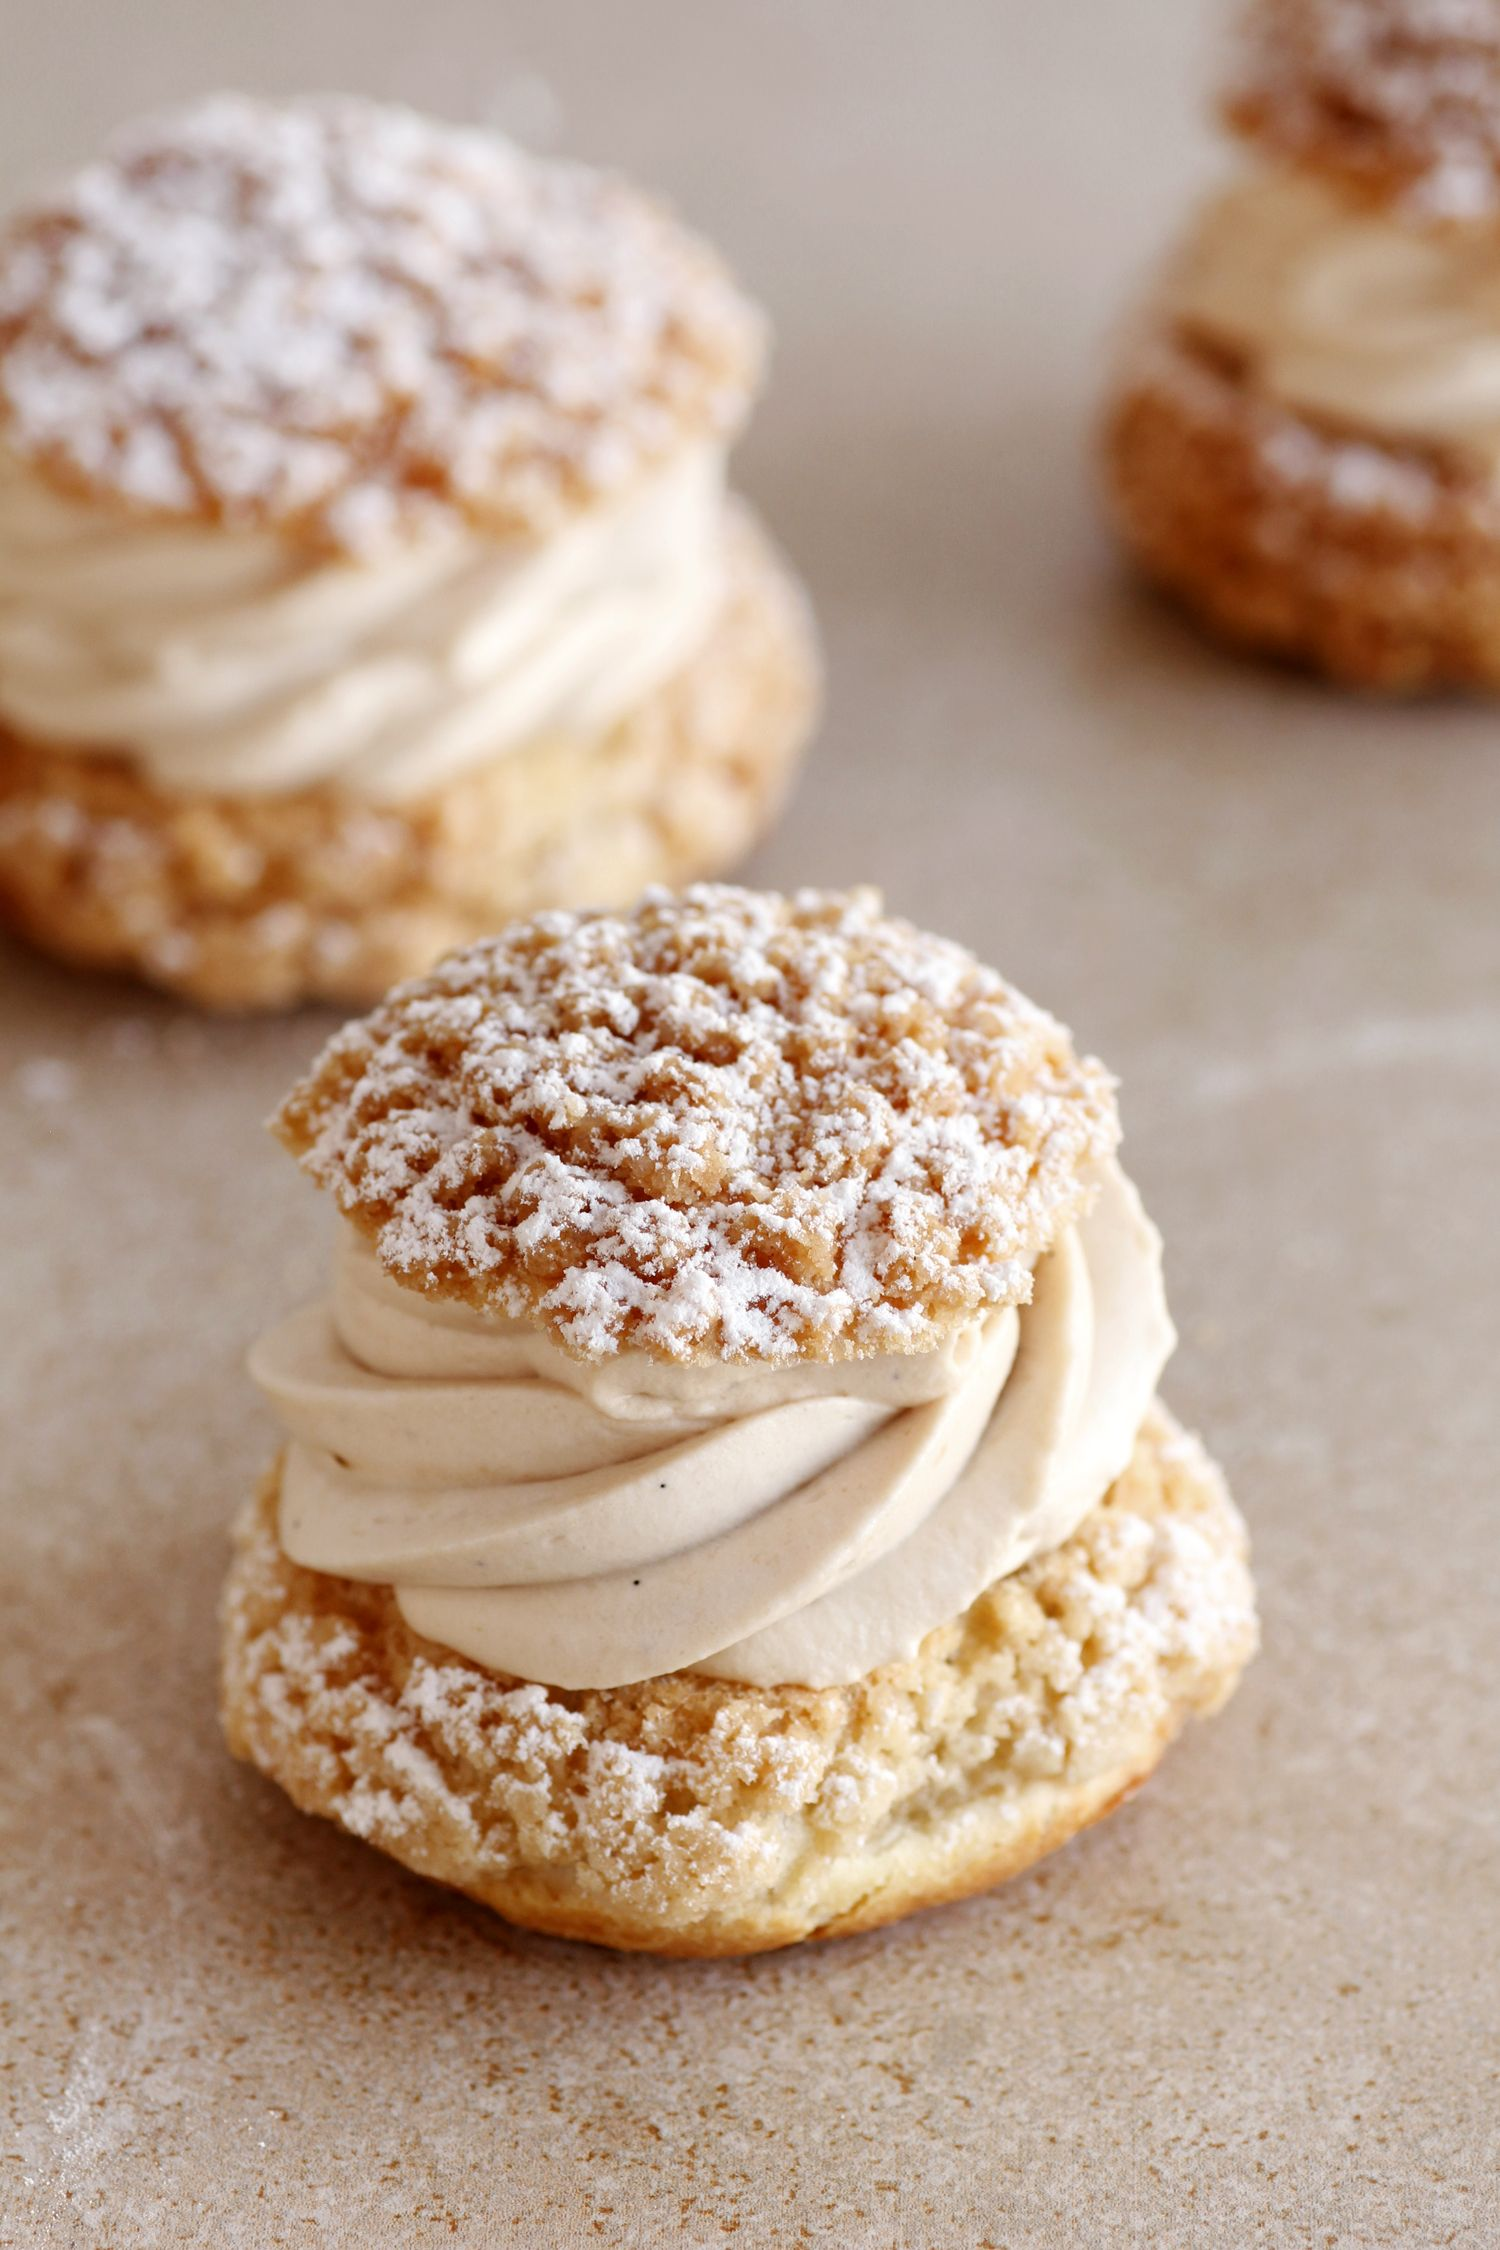 Almond, Chocolate and Coffee Cream Puffs